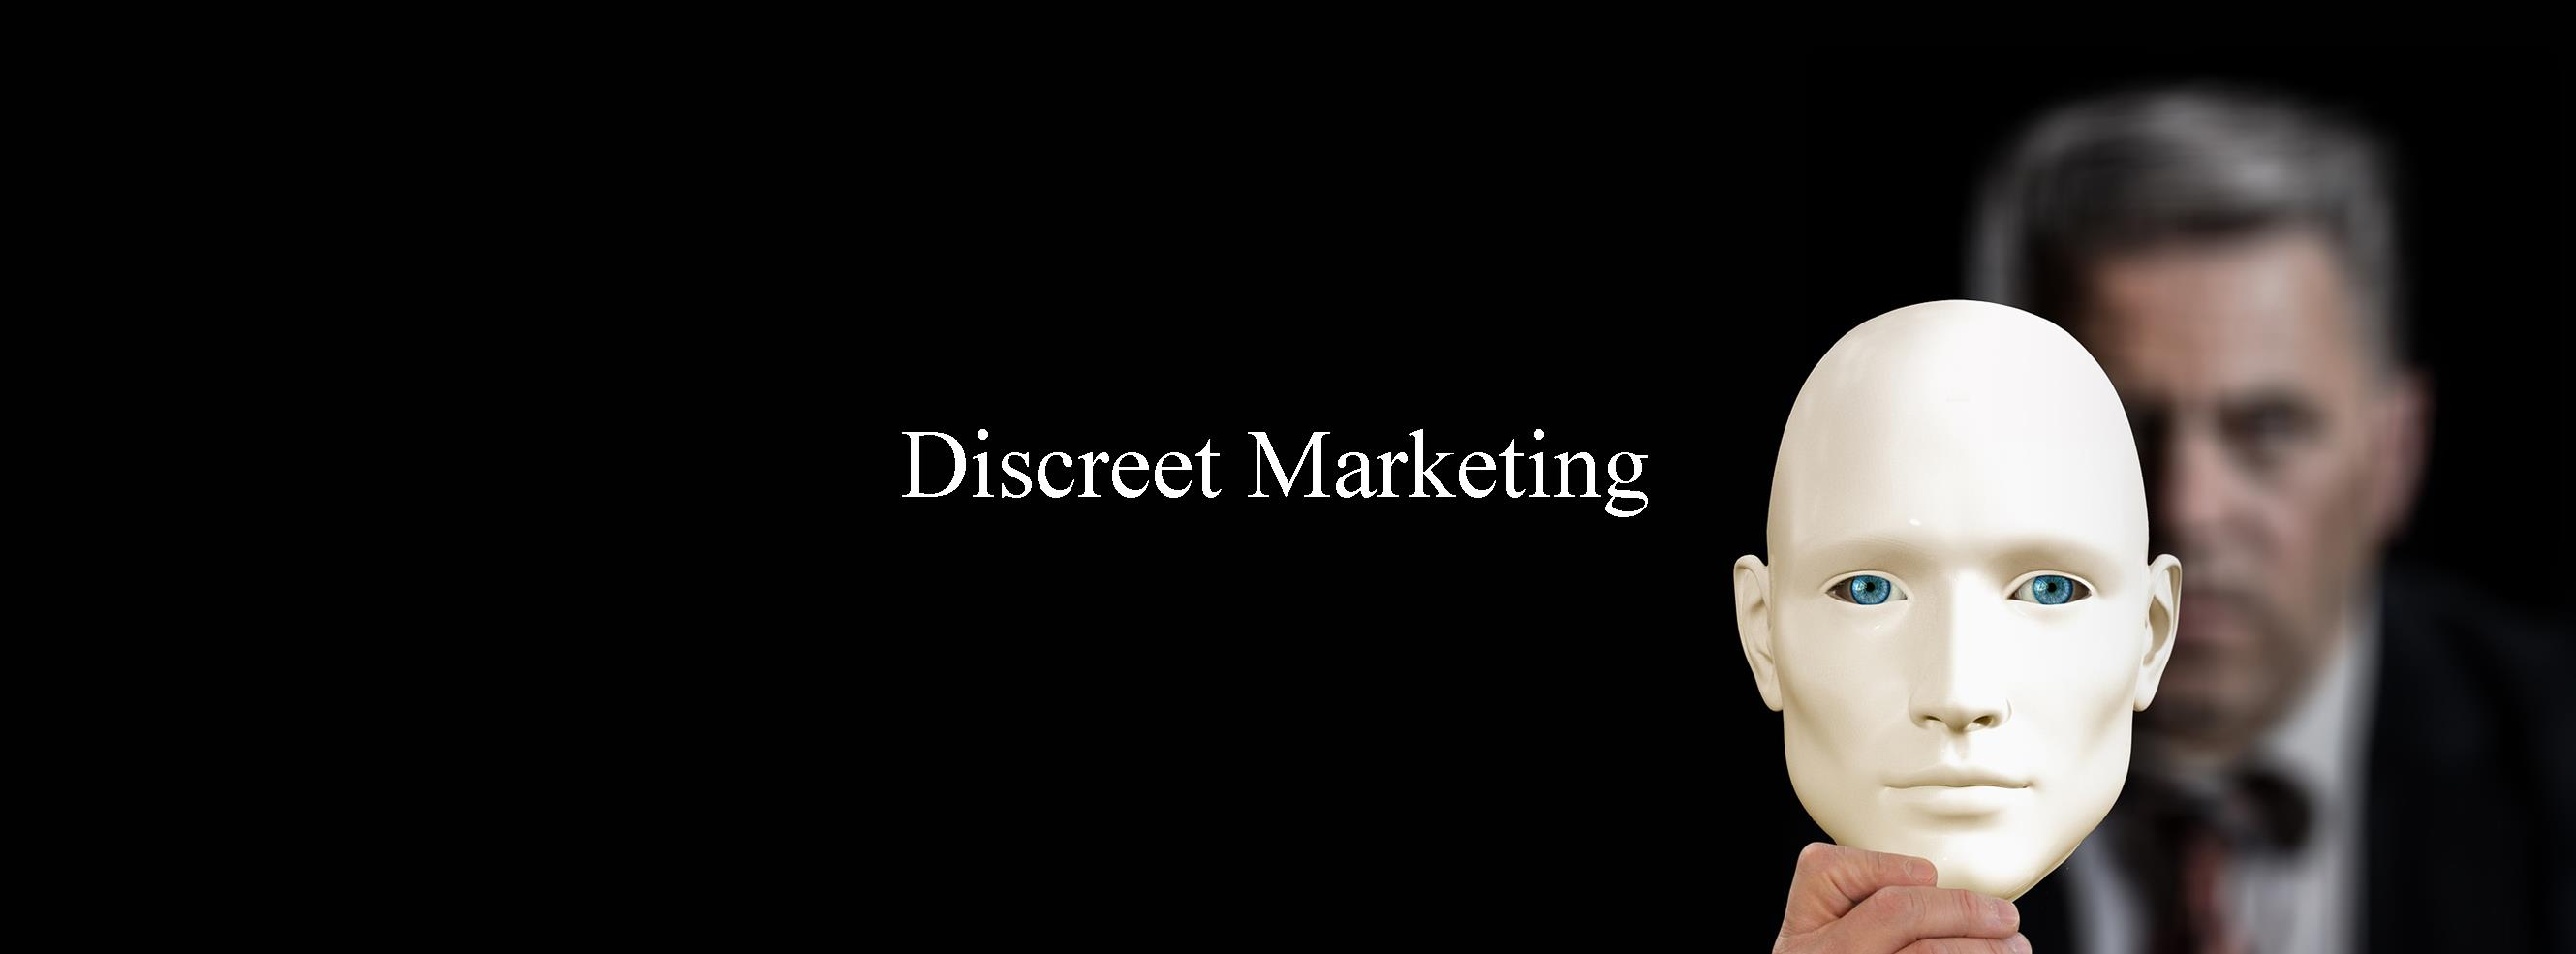 discreet_marketing